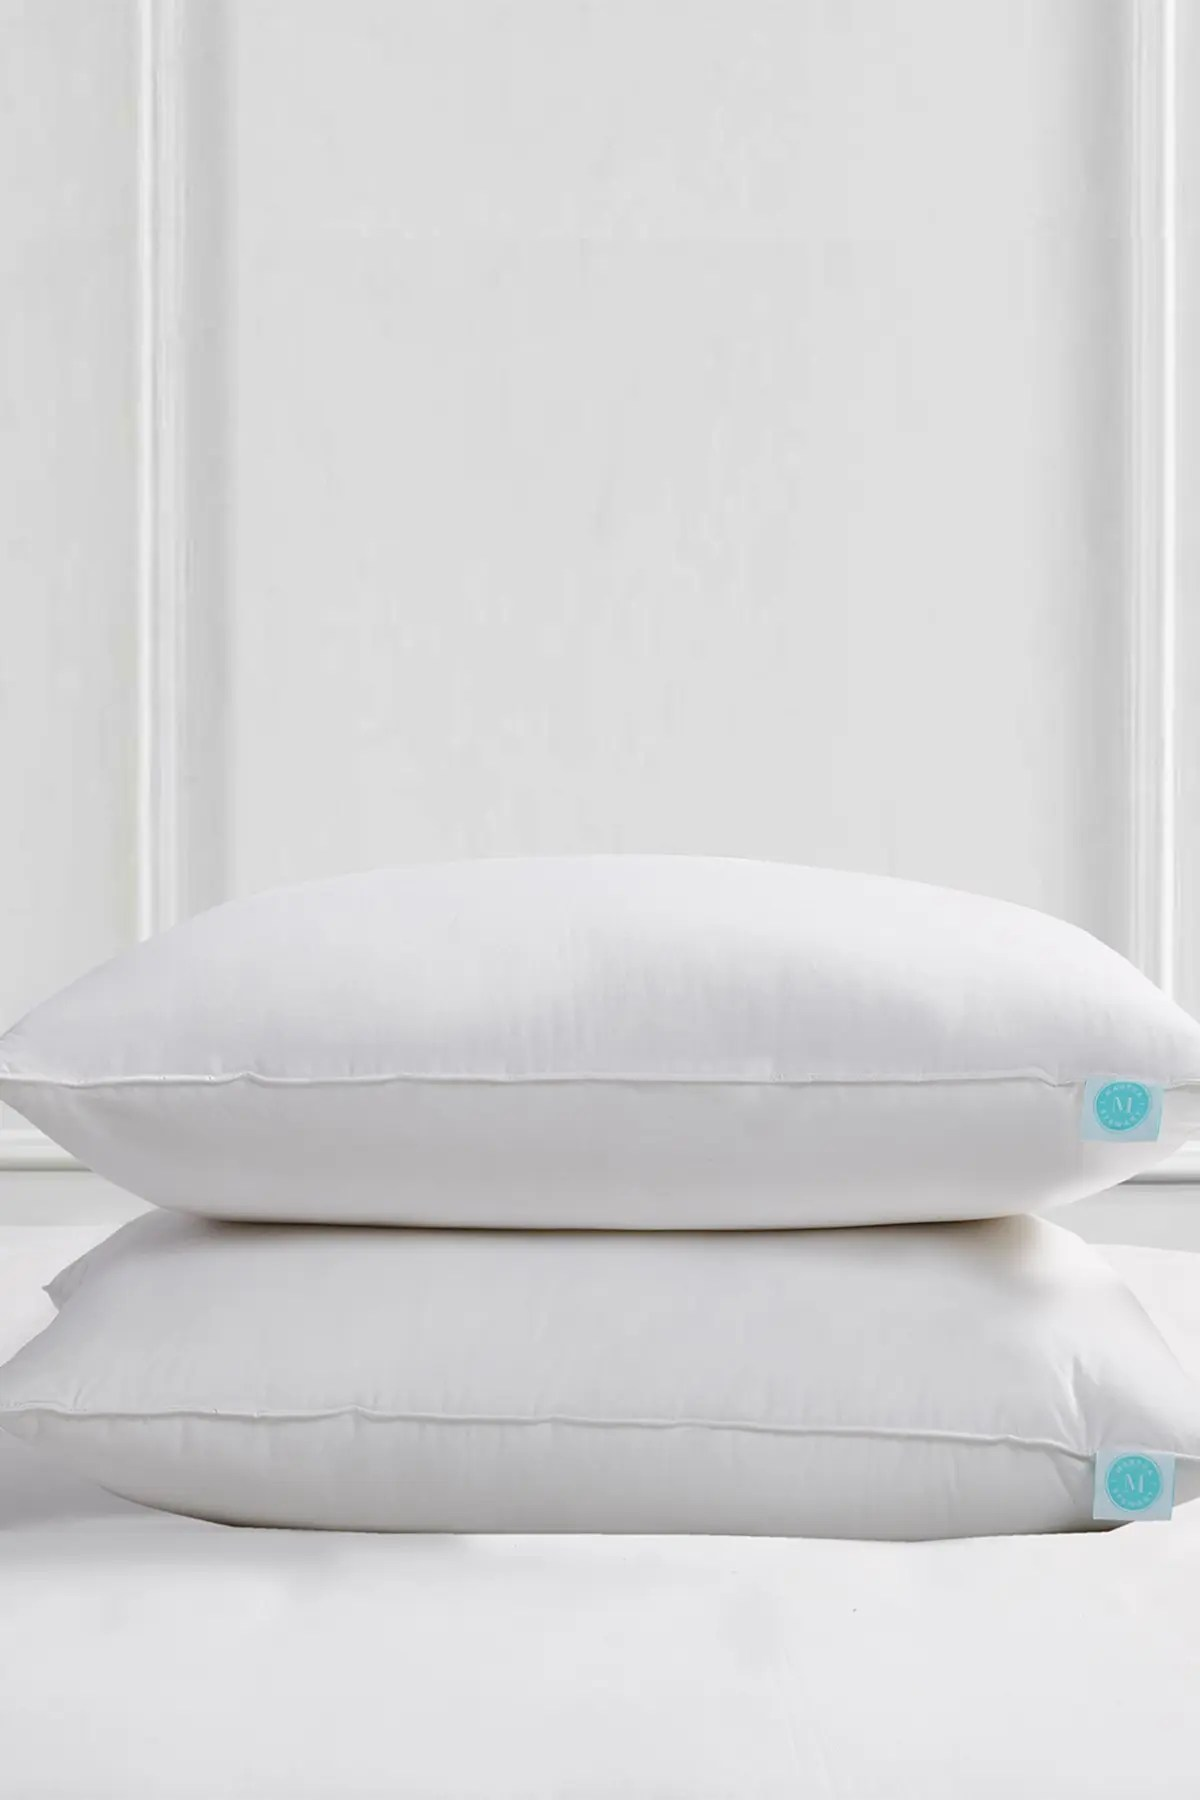 blue ridge home fashions martha stewart 240 thread count poly around feather down pillow standard queen set of 2 nordstrom rack